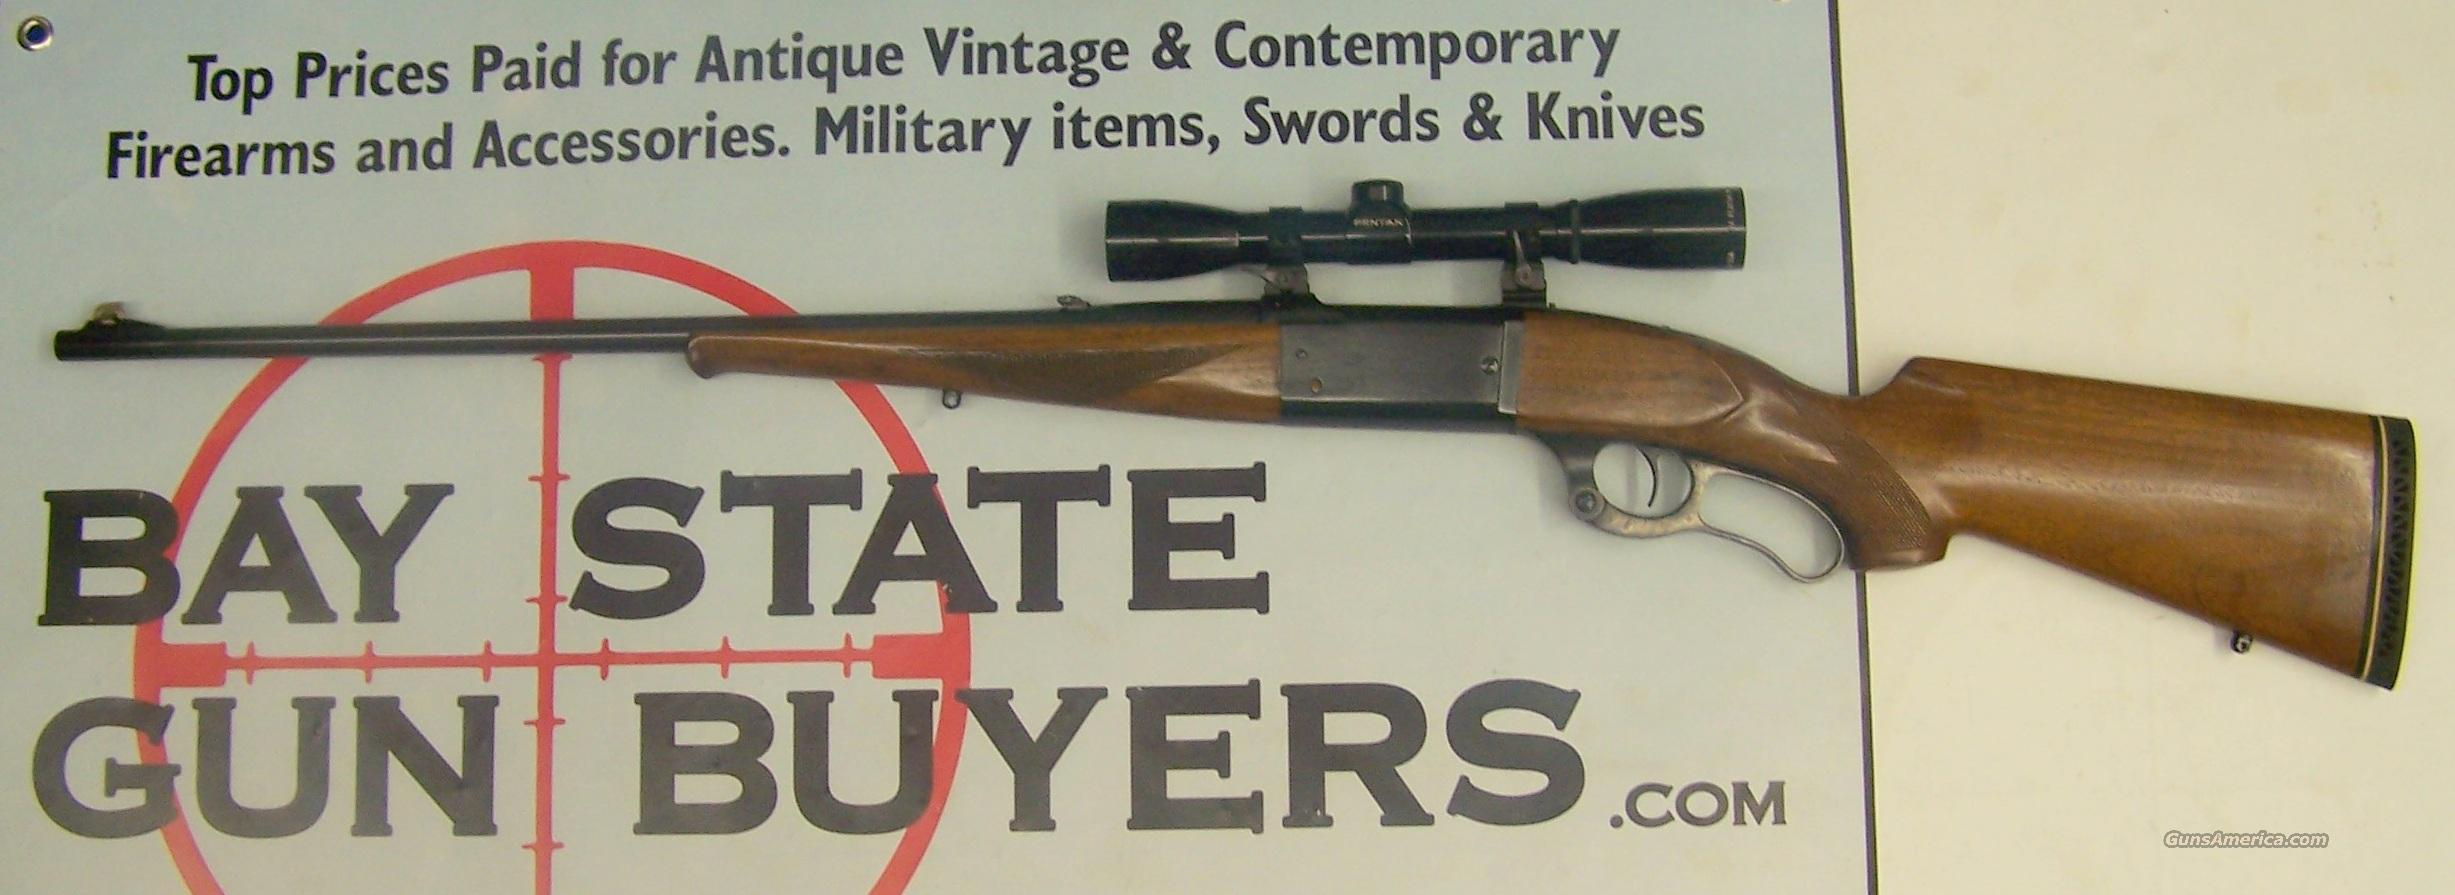 (1941) Savage Model 99 Lever Action Rifle .300 Savage with Pentax 4x Scope  Guns > Rifles > Savage Rifles > Model 95/99 Family